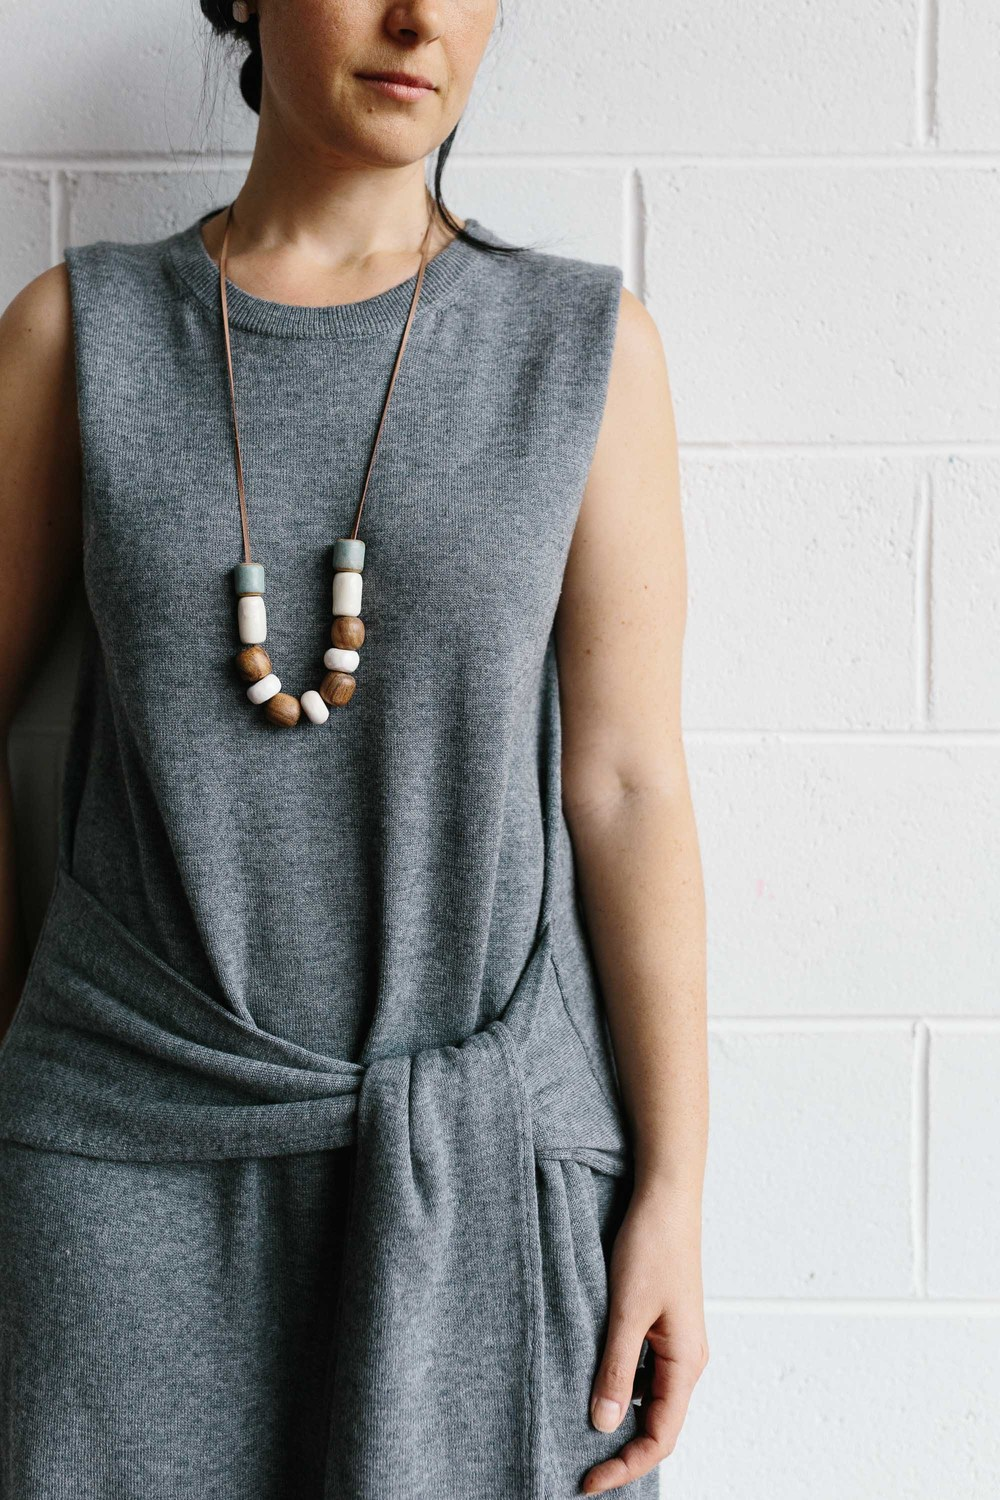 Marnie Hawson, Melbourne lifestyle photographer for Woodfolk Natural Accessories